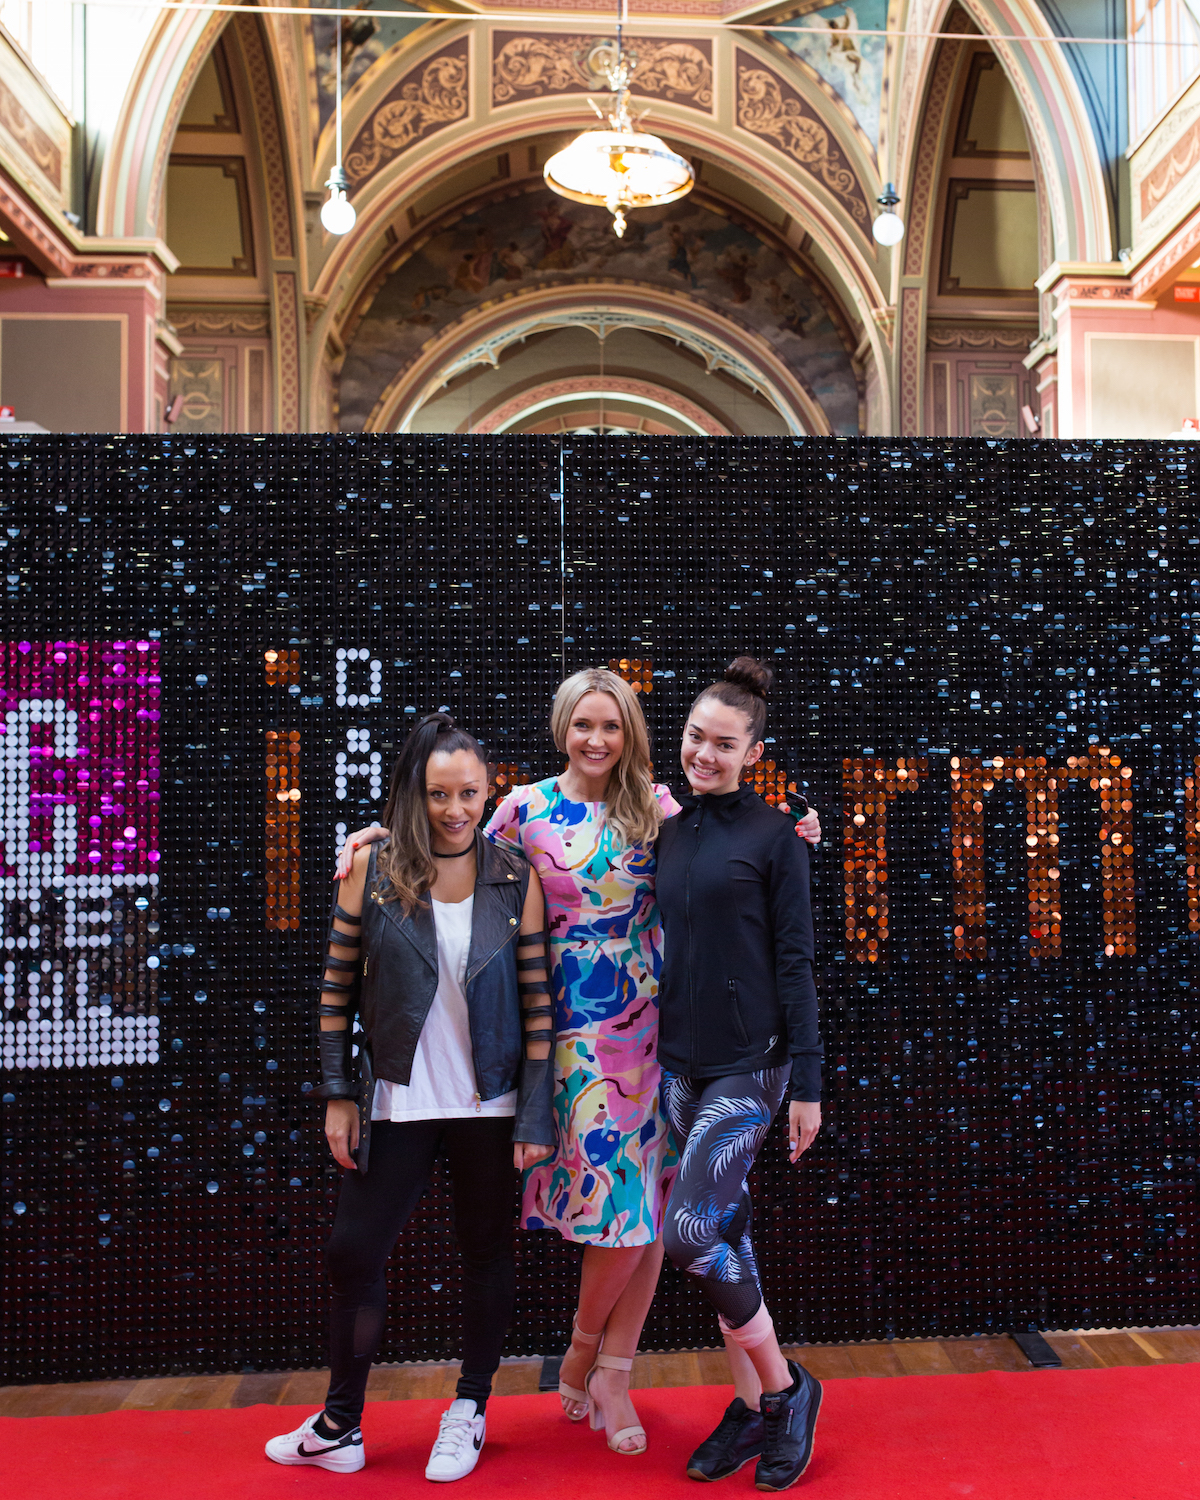 Yvette Lee, VDF's Artistic Director stands with Founder and Director Kate Meade and 2018 Ambassador Portia Talib in the final few quiet moments before the first day of the festival launches into full swing. Below: Portia Talib (left), The Energetiks Team (centre), and Ella McMillan - VDF's 2017 Ambassador, ready for day one!